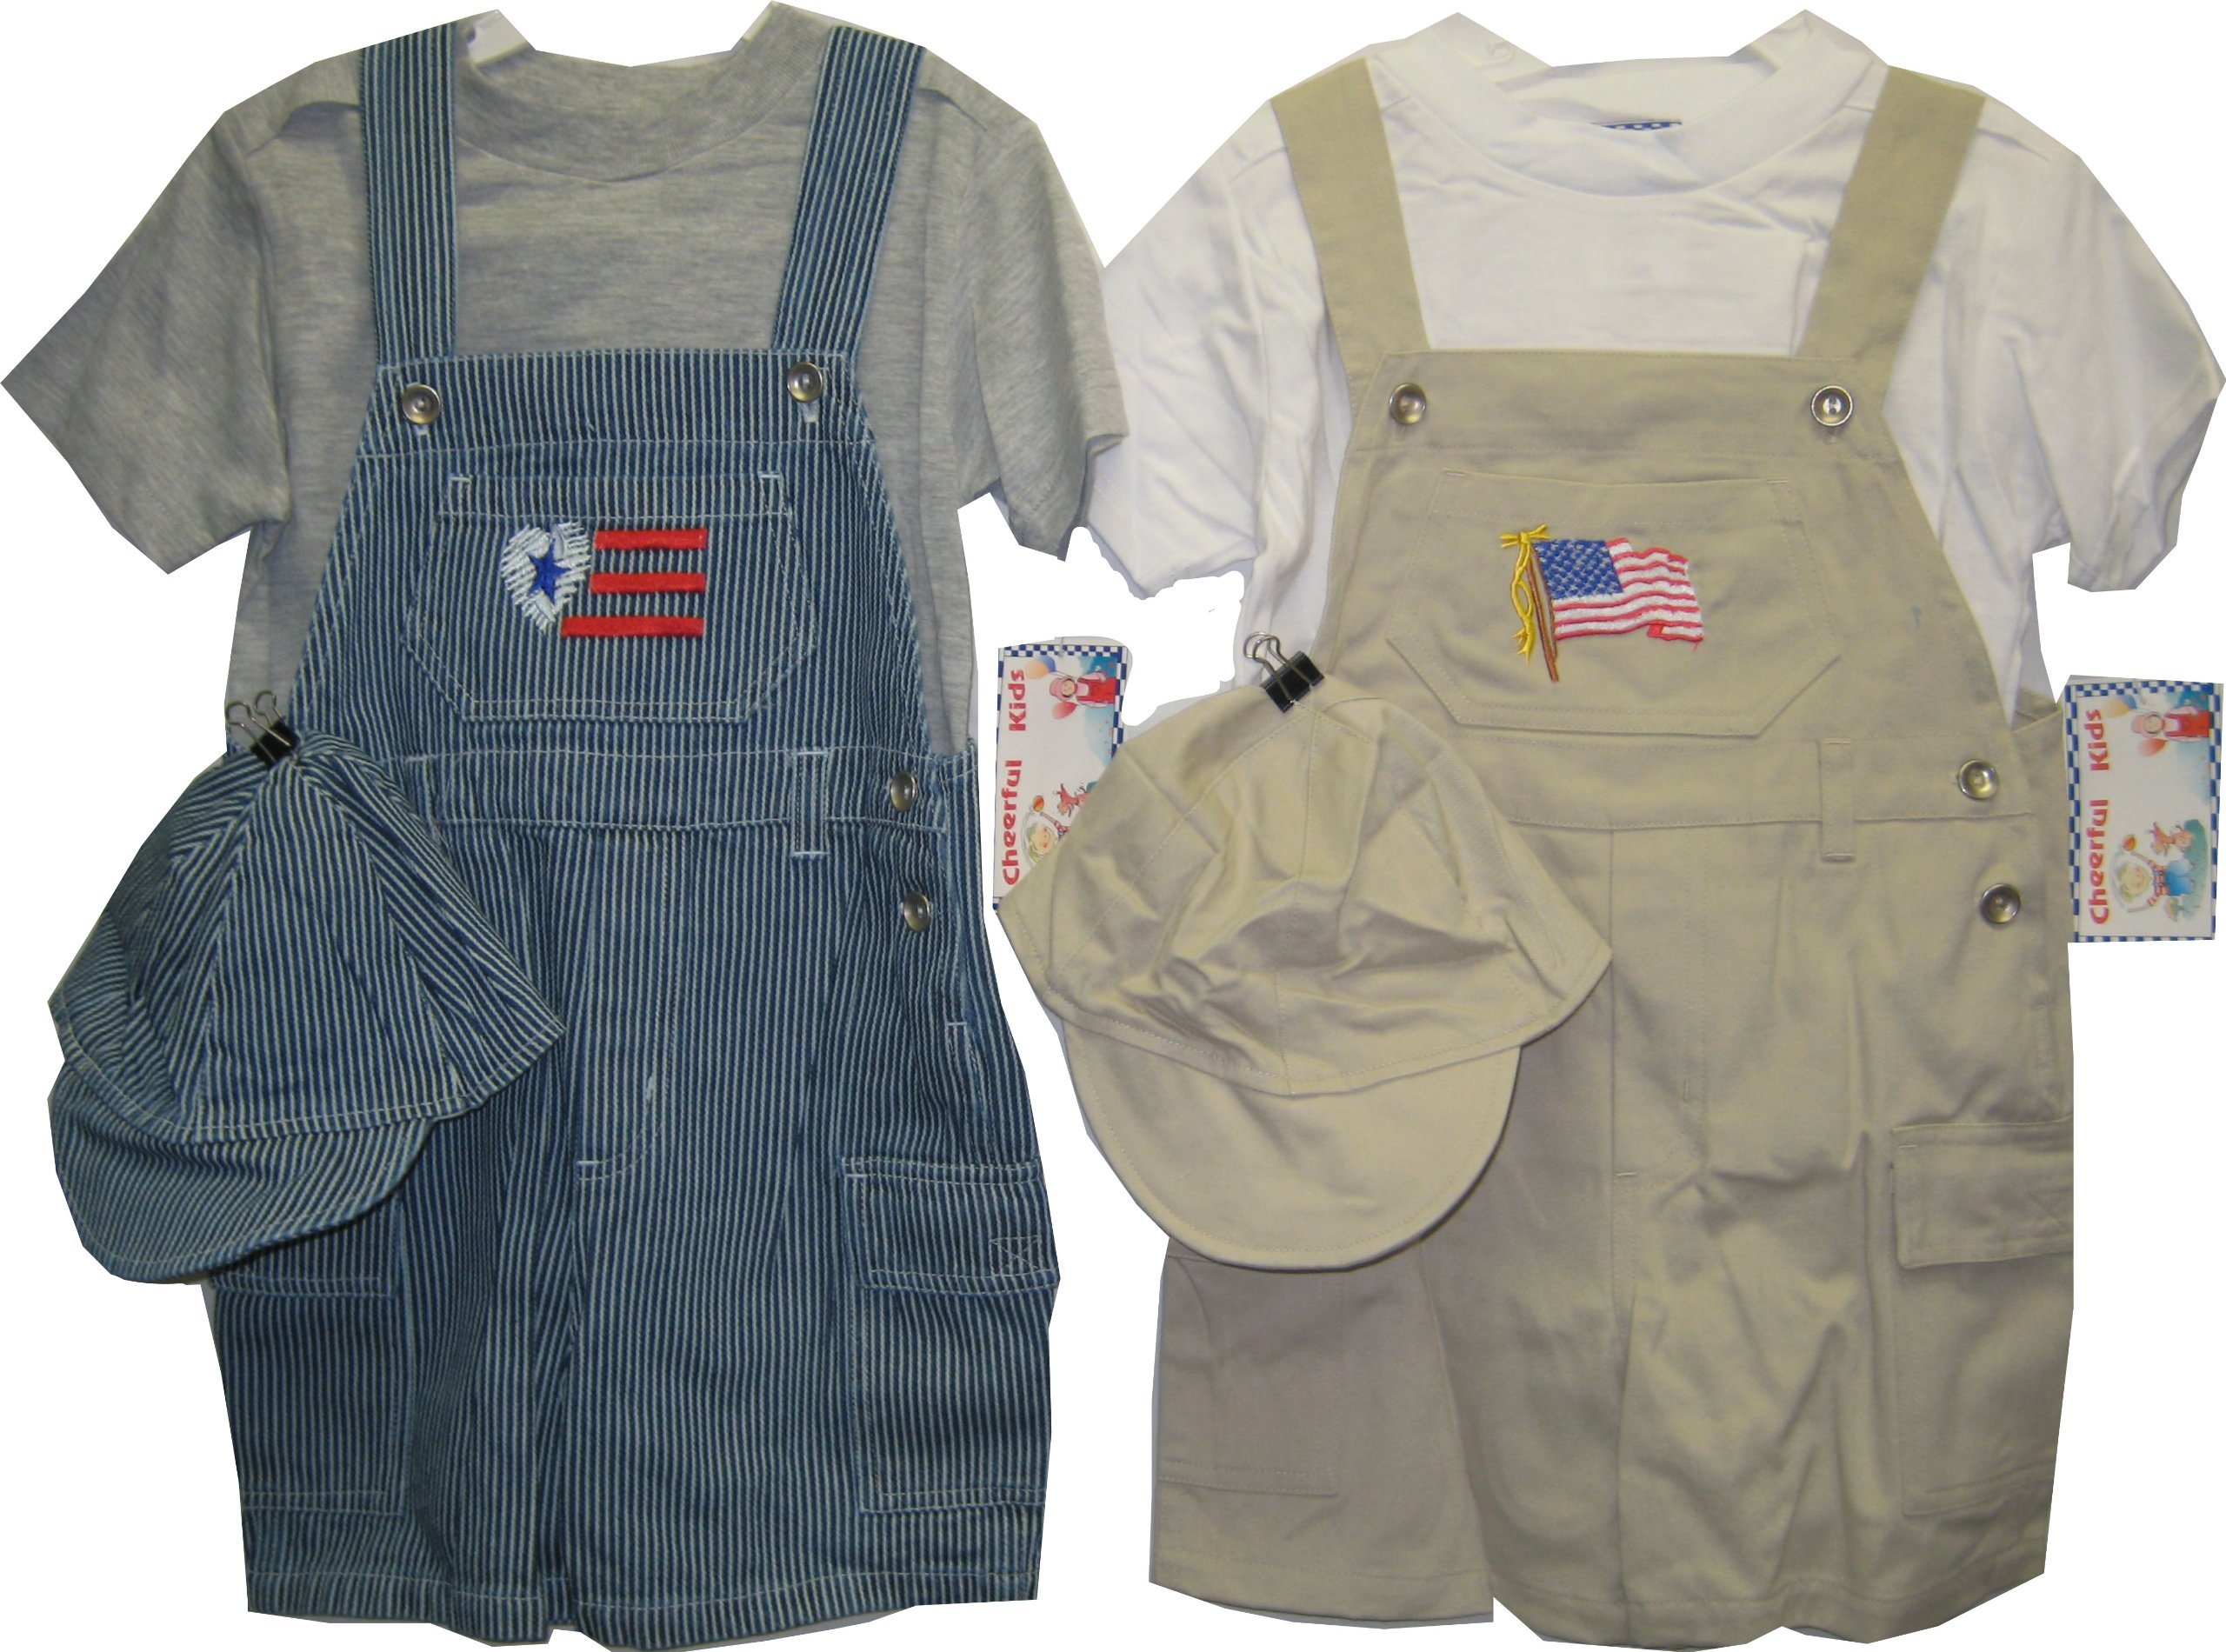 Toddler Size 2T Shortall 2-PC Sets2 PACKS